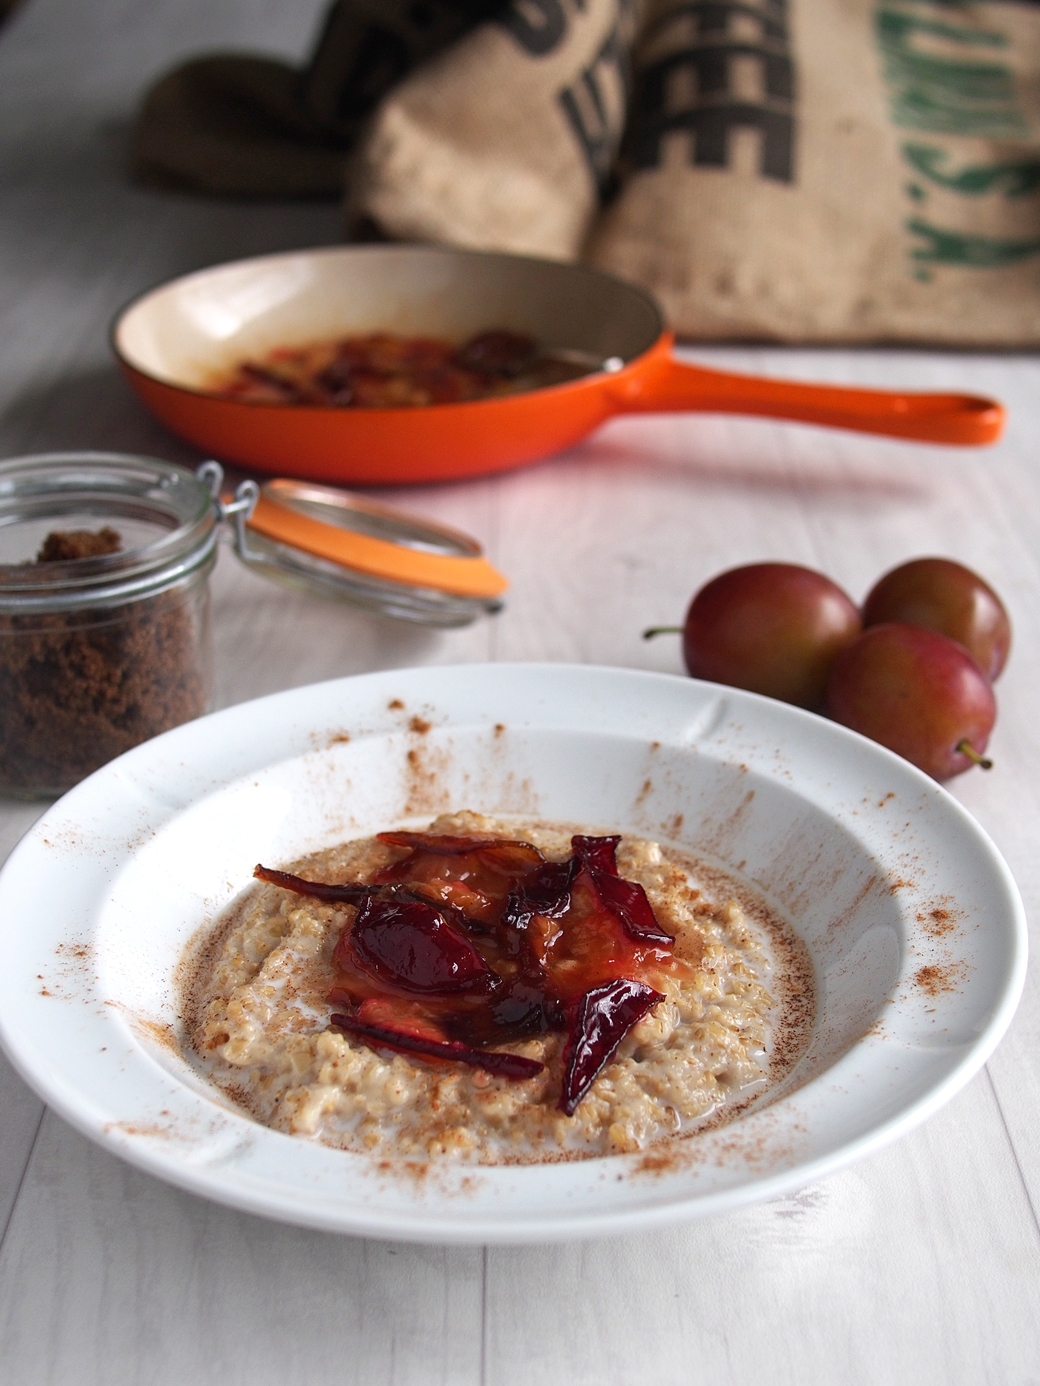 Toasted Oatmeal with Seared Plums